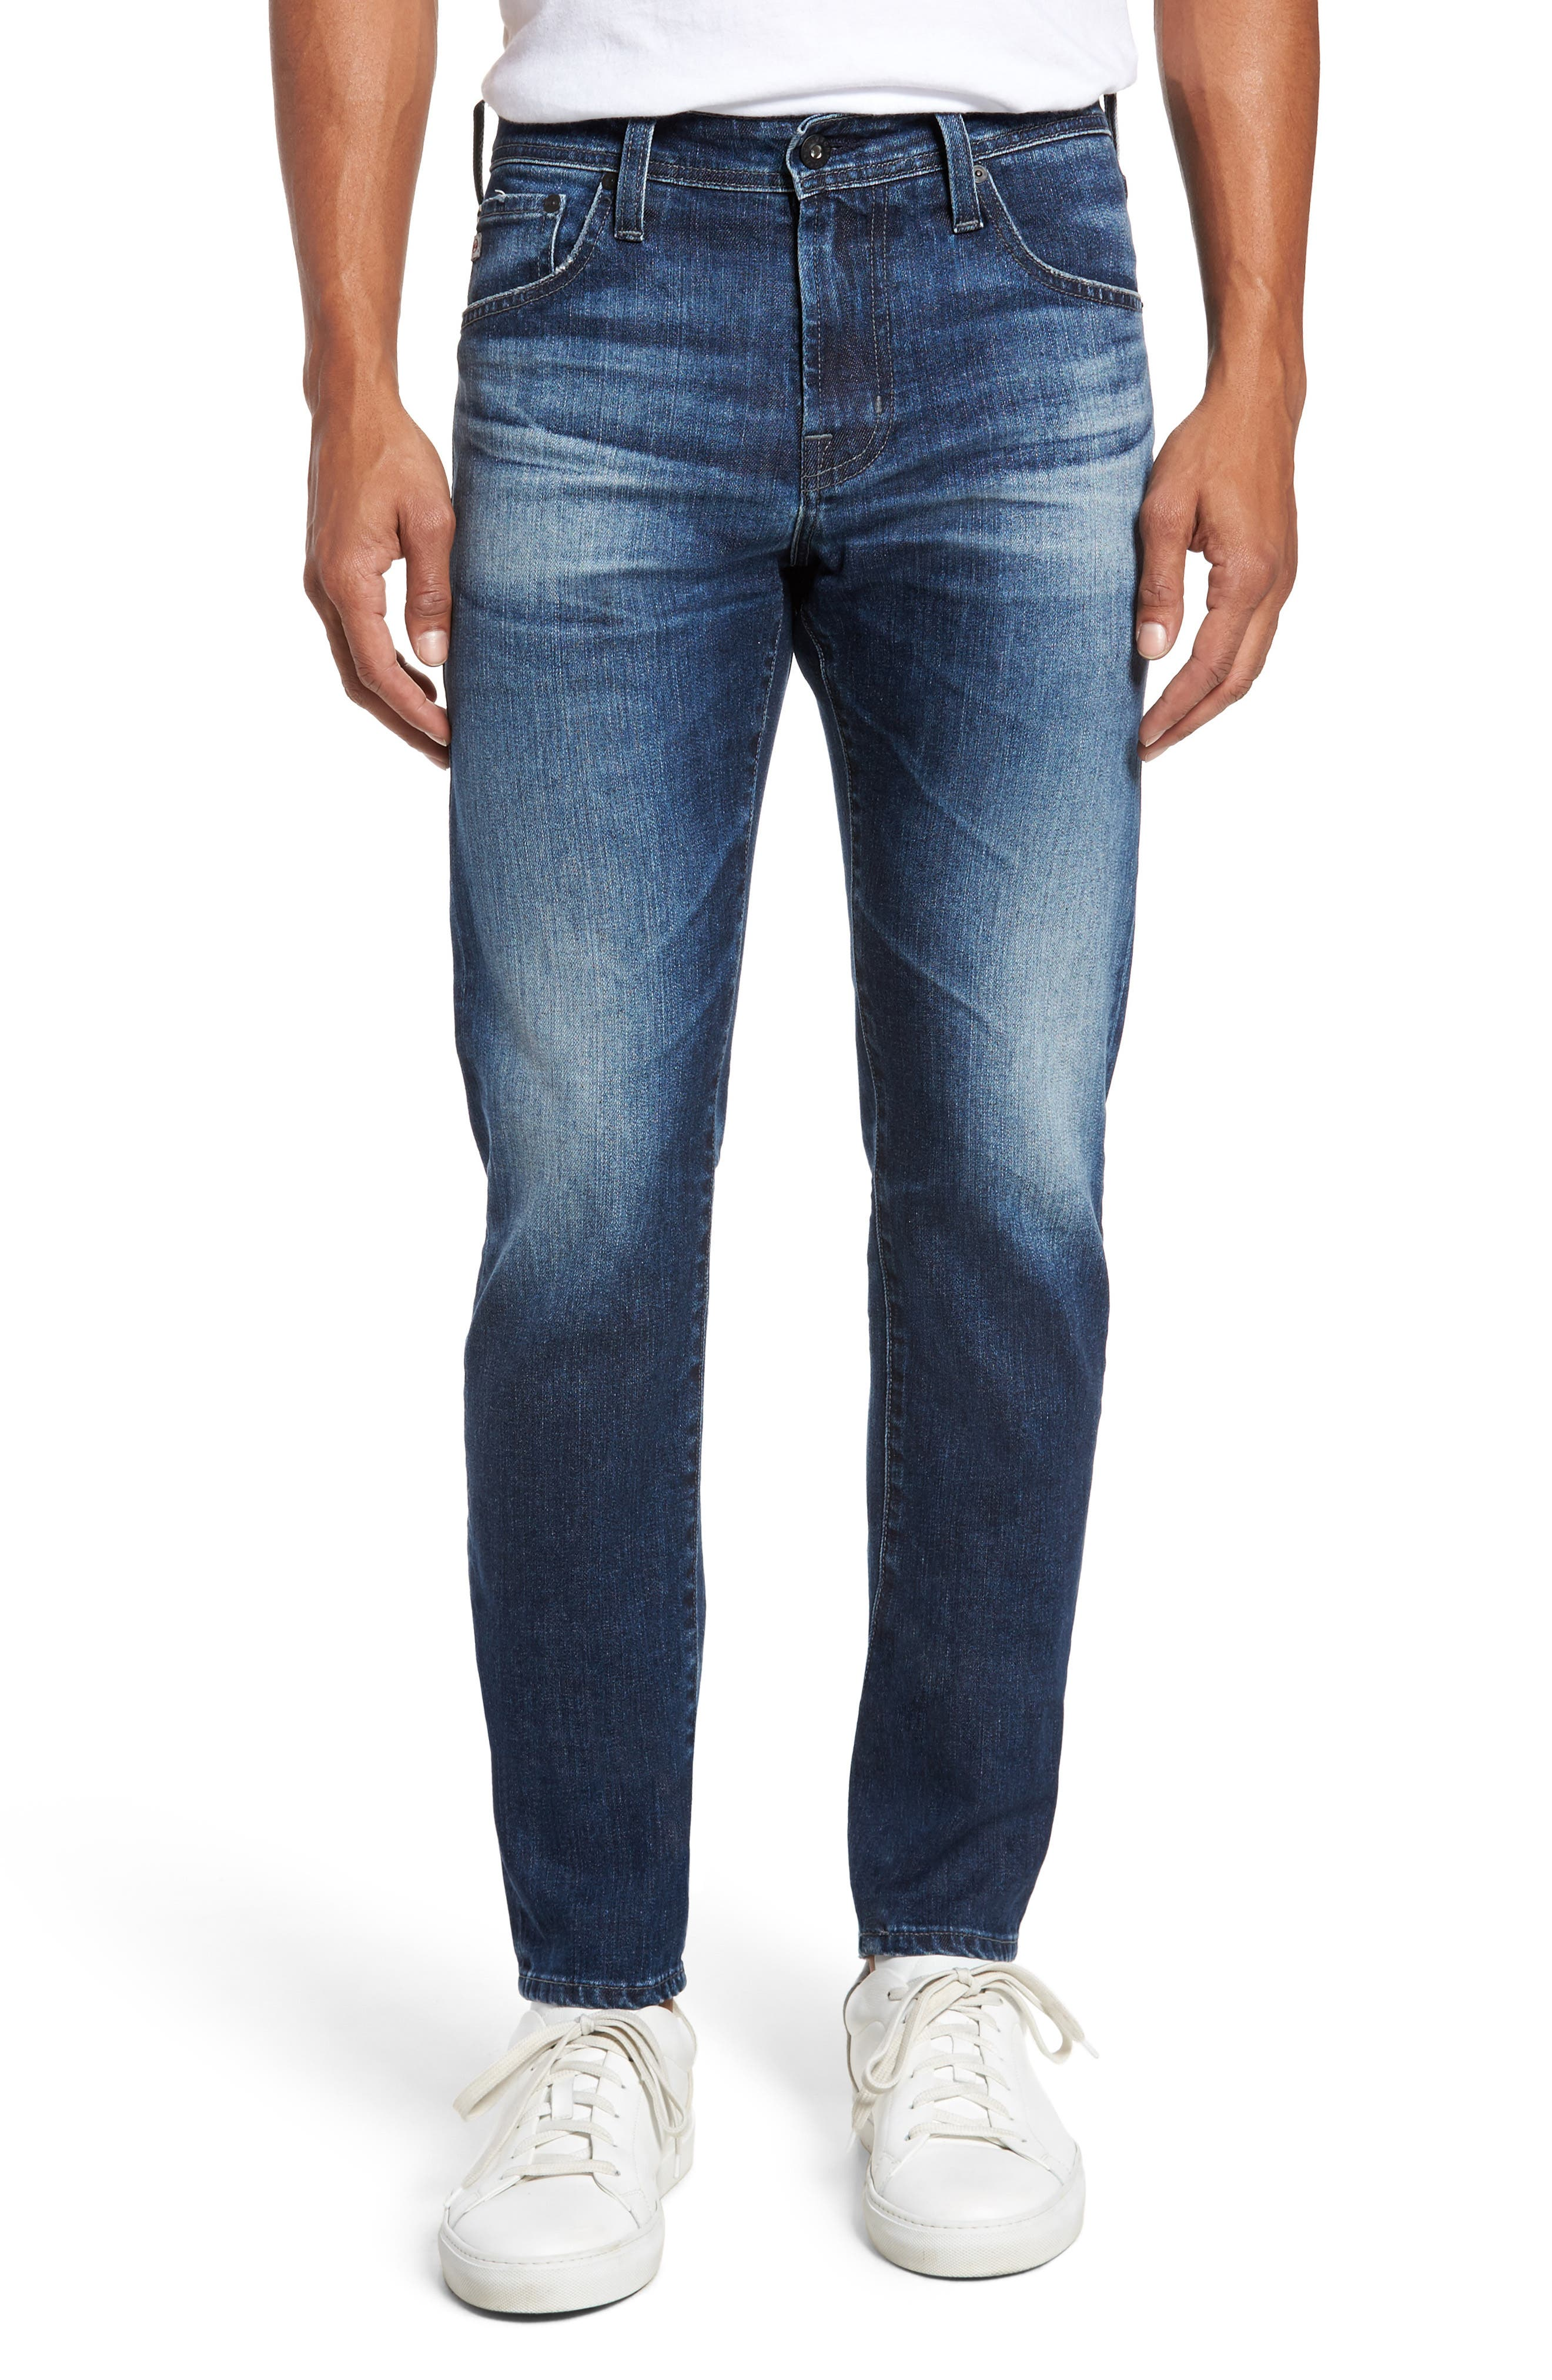 Stockton Skinny Fit Jeans,                             Main thumbnail 1, color,                             7 Years Blue Spire